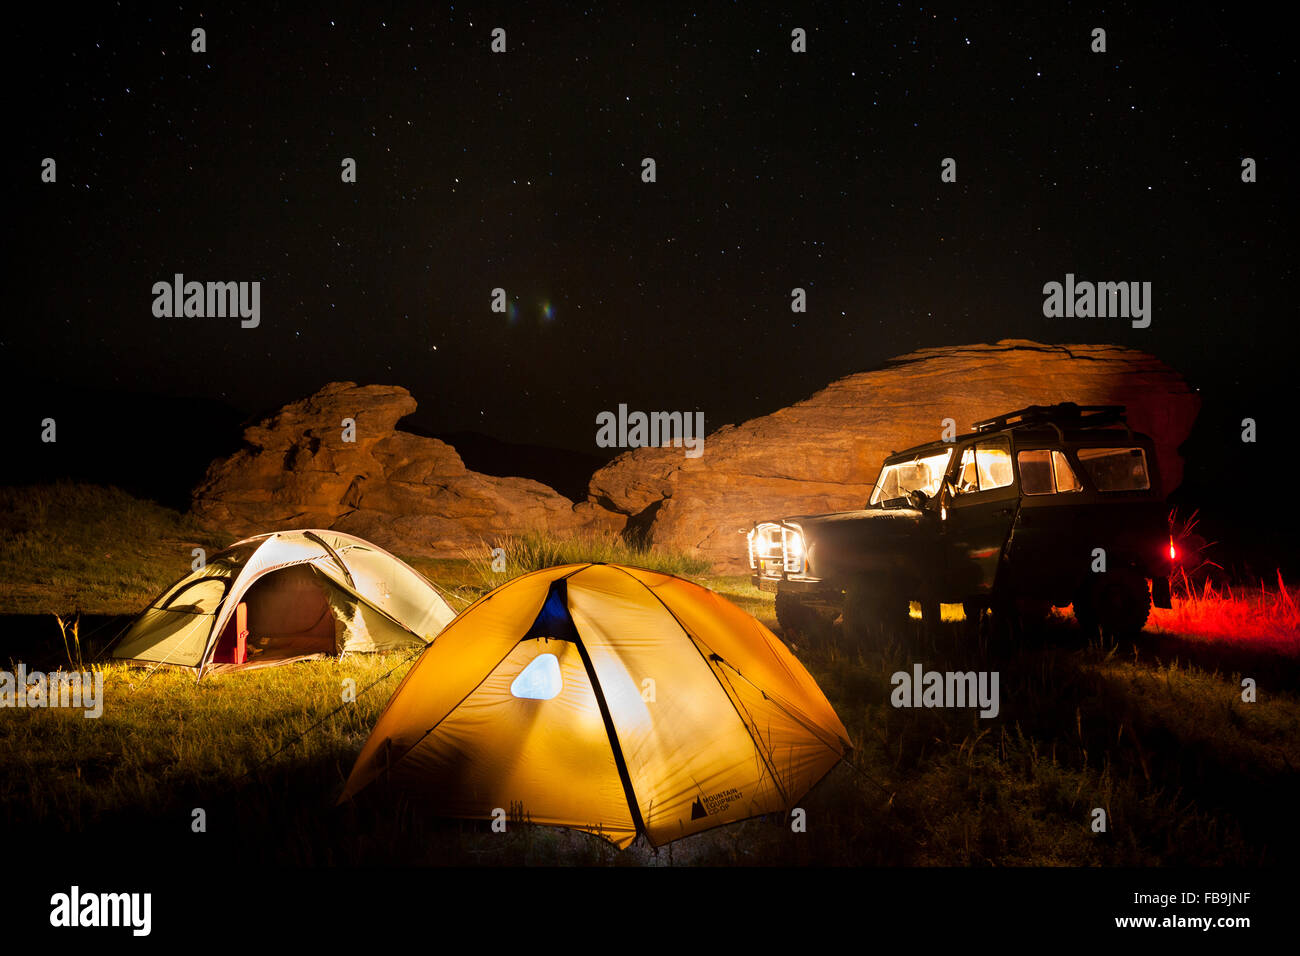 4X4 offroad camping under the stars in the Gobi Desert, Mongolia. - Stock Image